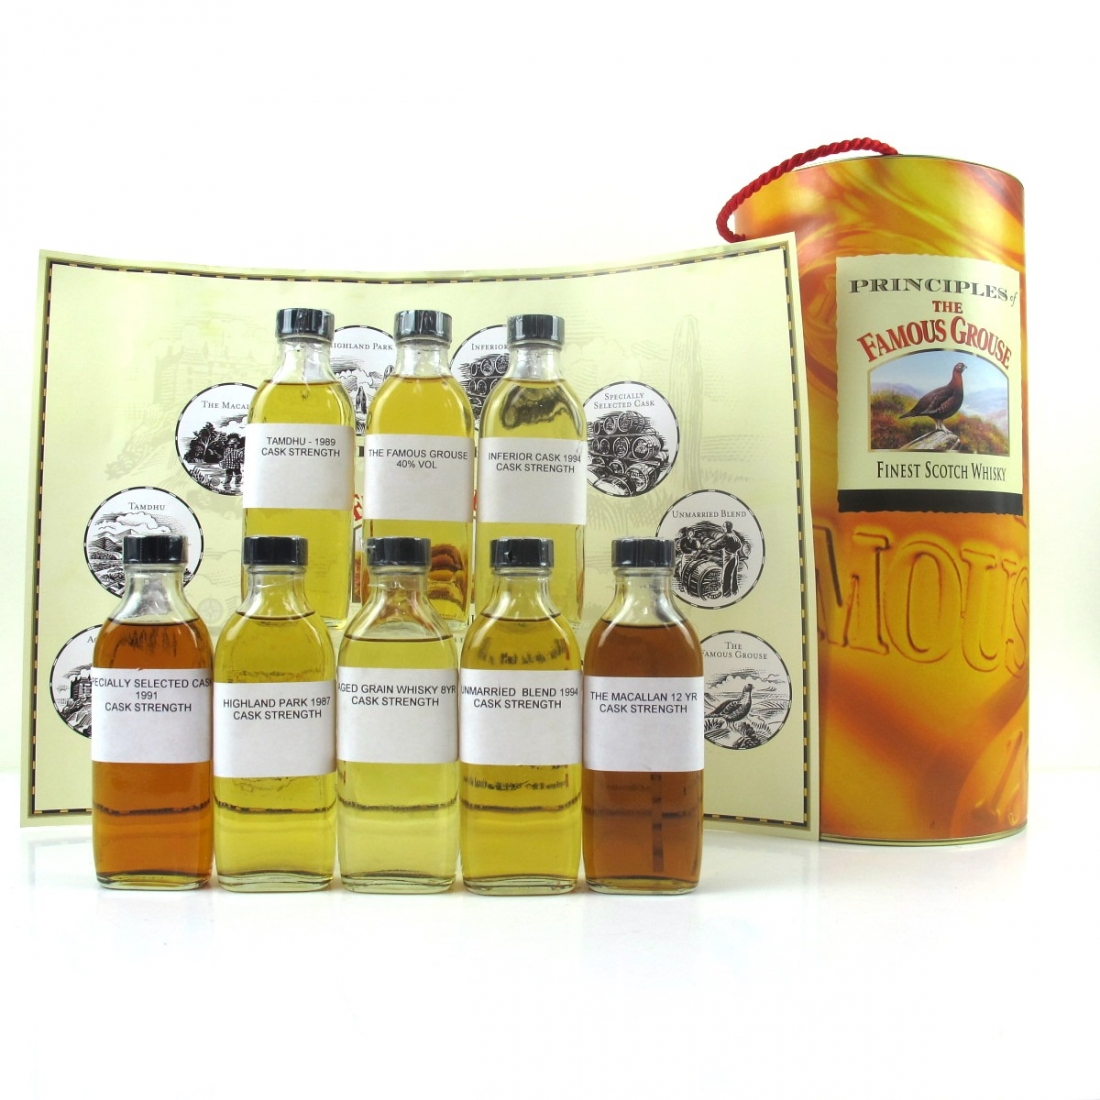 Famous Grouse Principles Tasting Set 8 x 10cl / Including Macallan 12 and Highland Park 1987 Cask Strength